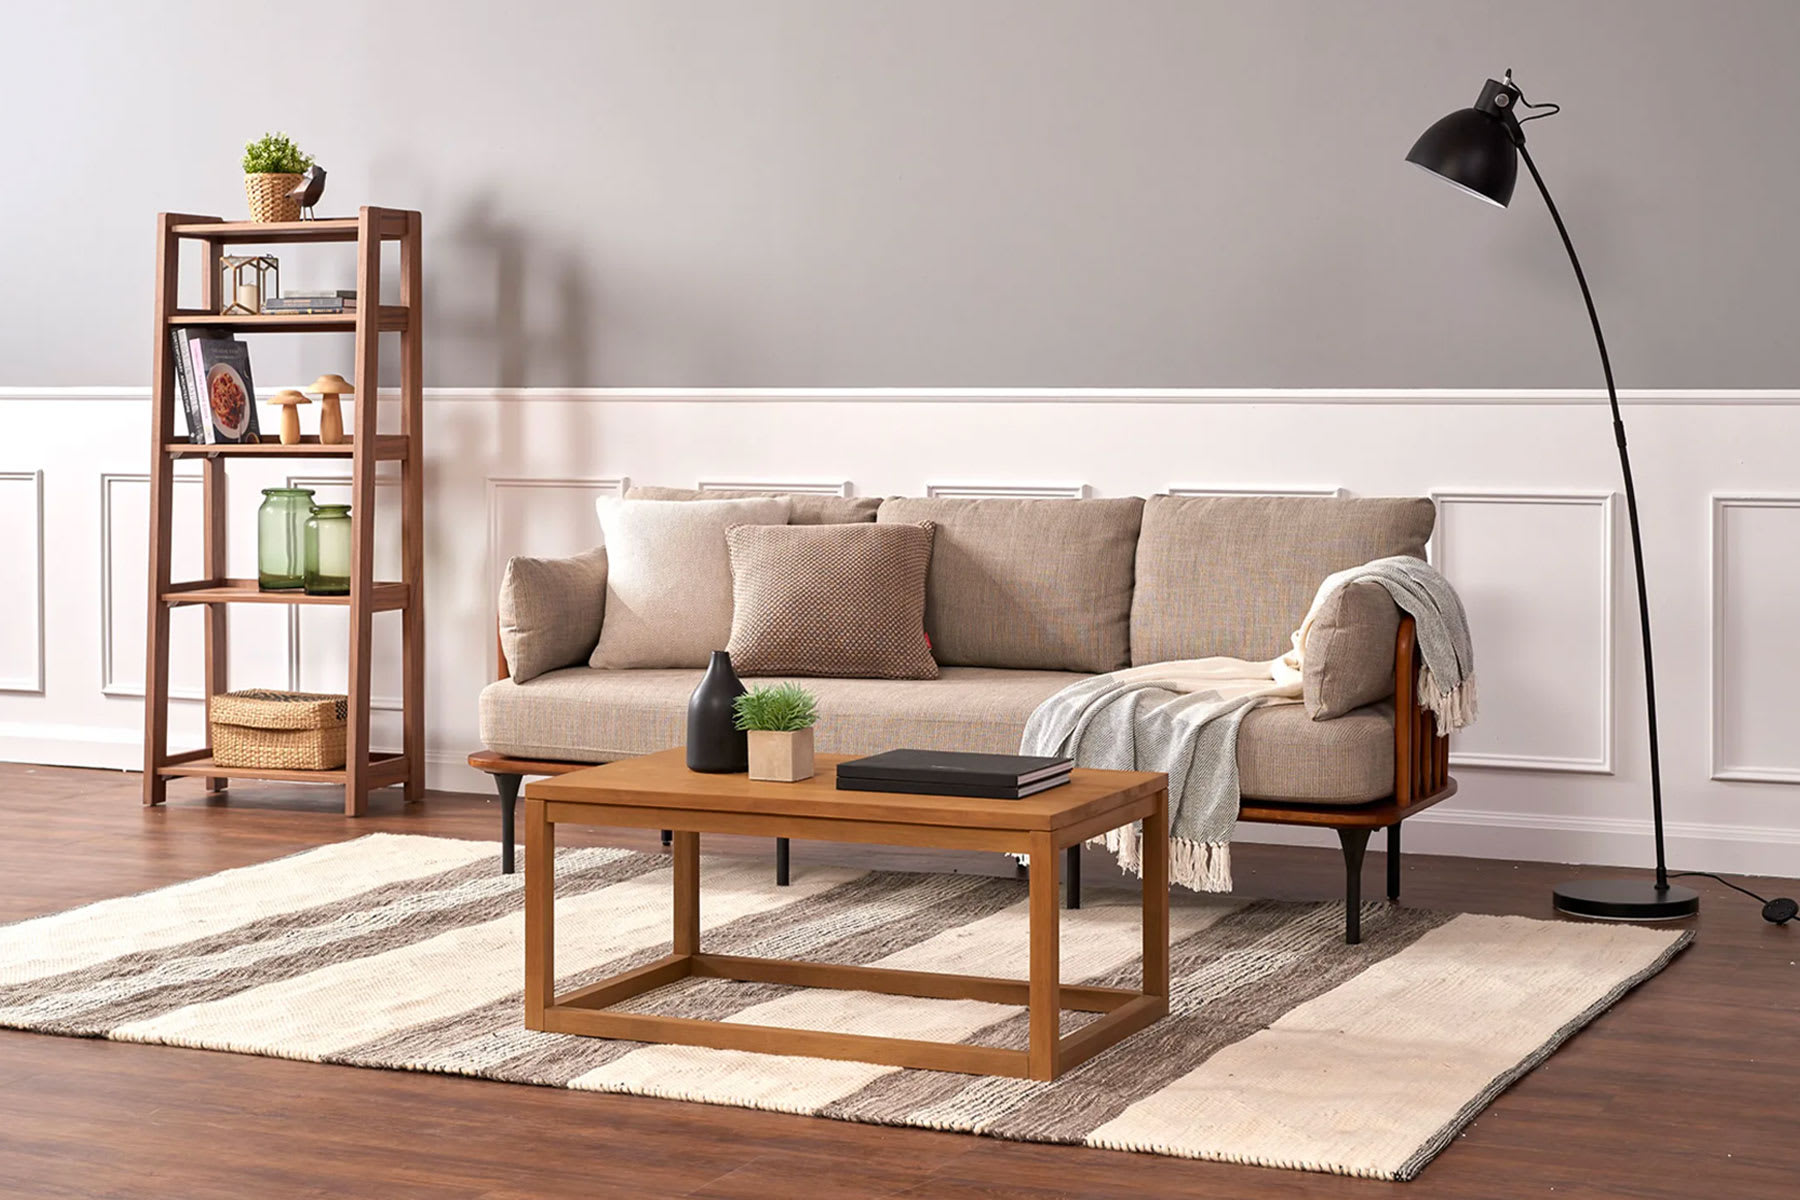 Mid-century modern sofa with coffee table, shelf and standing lamp